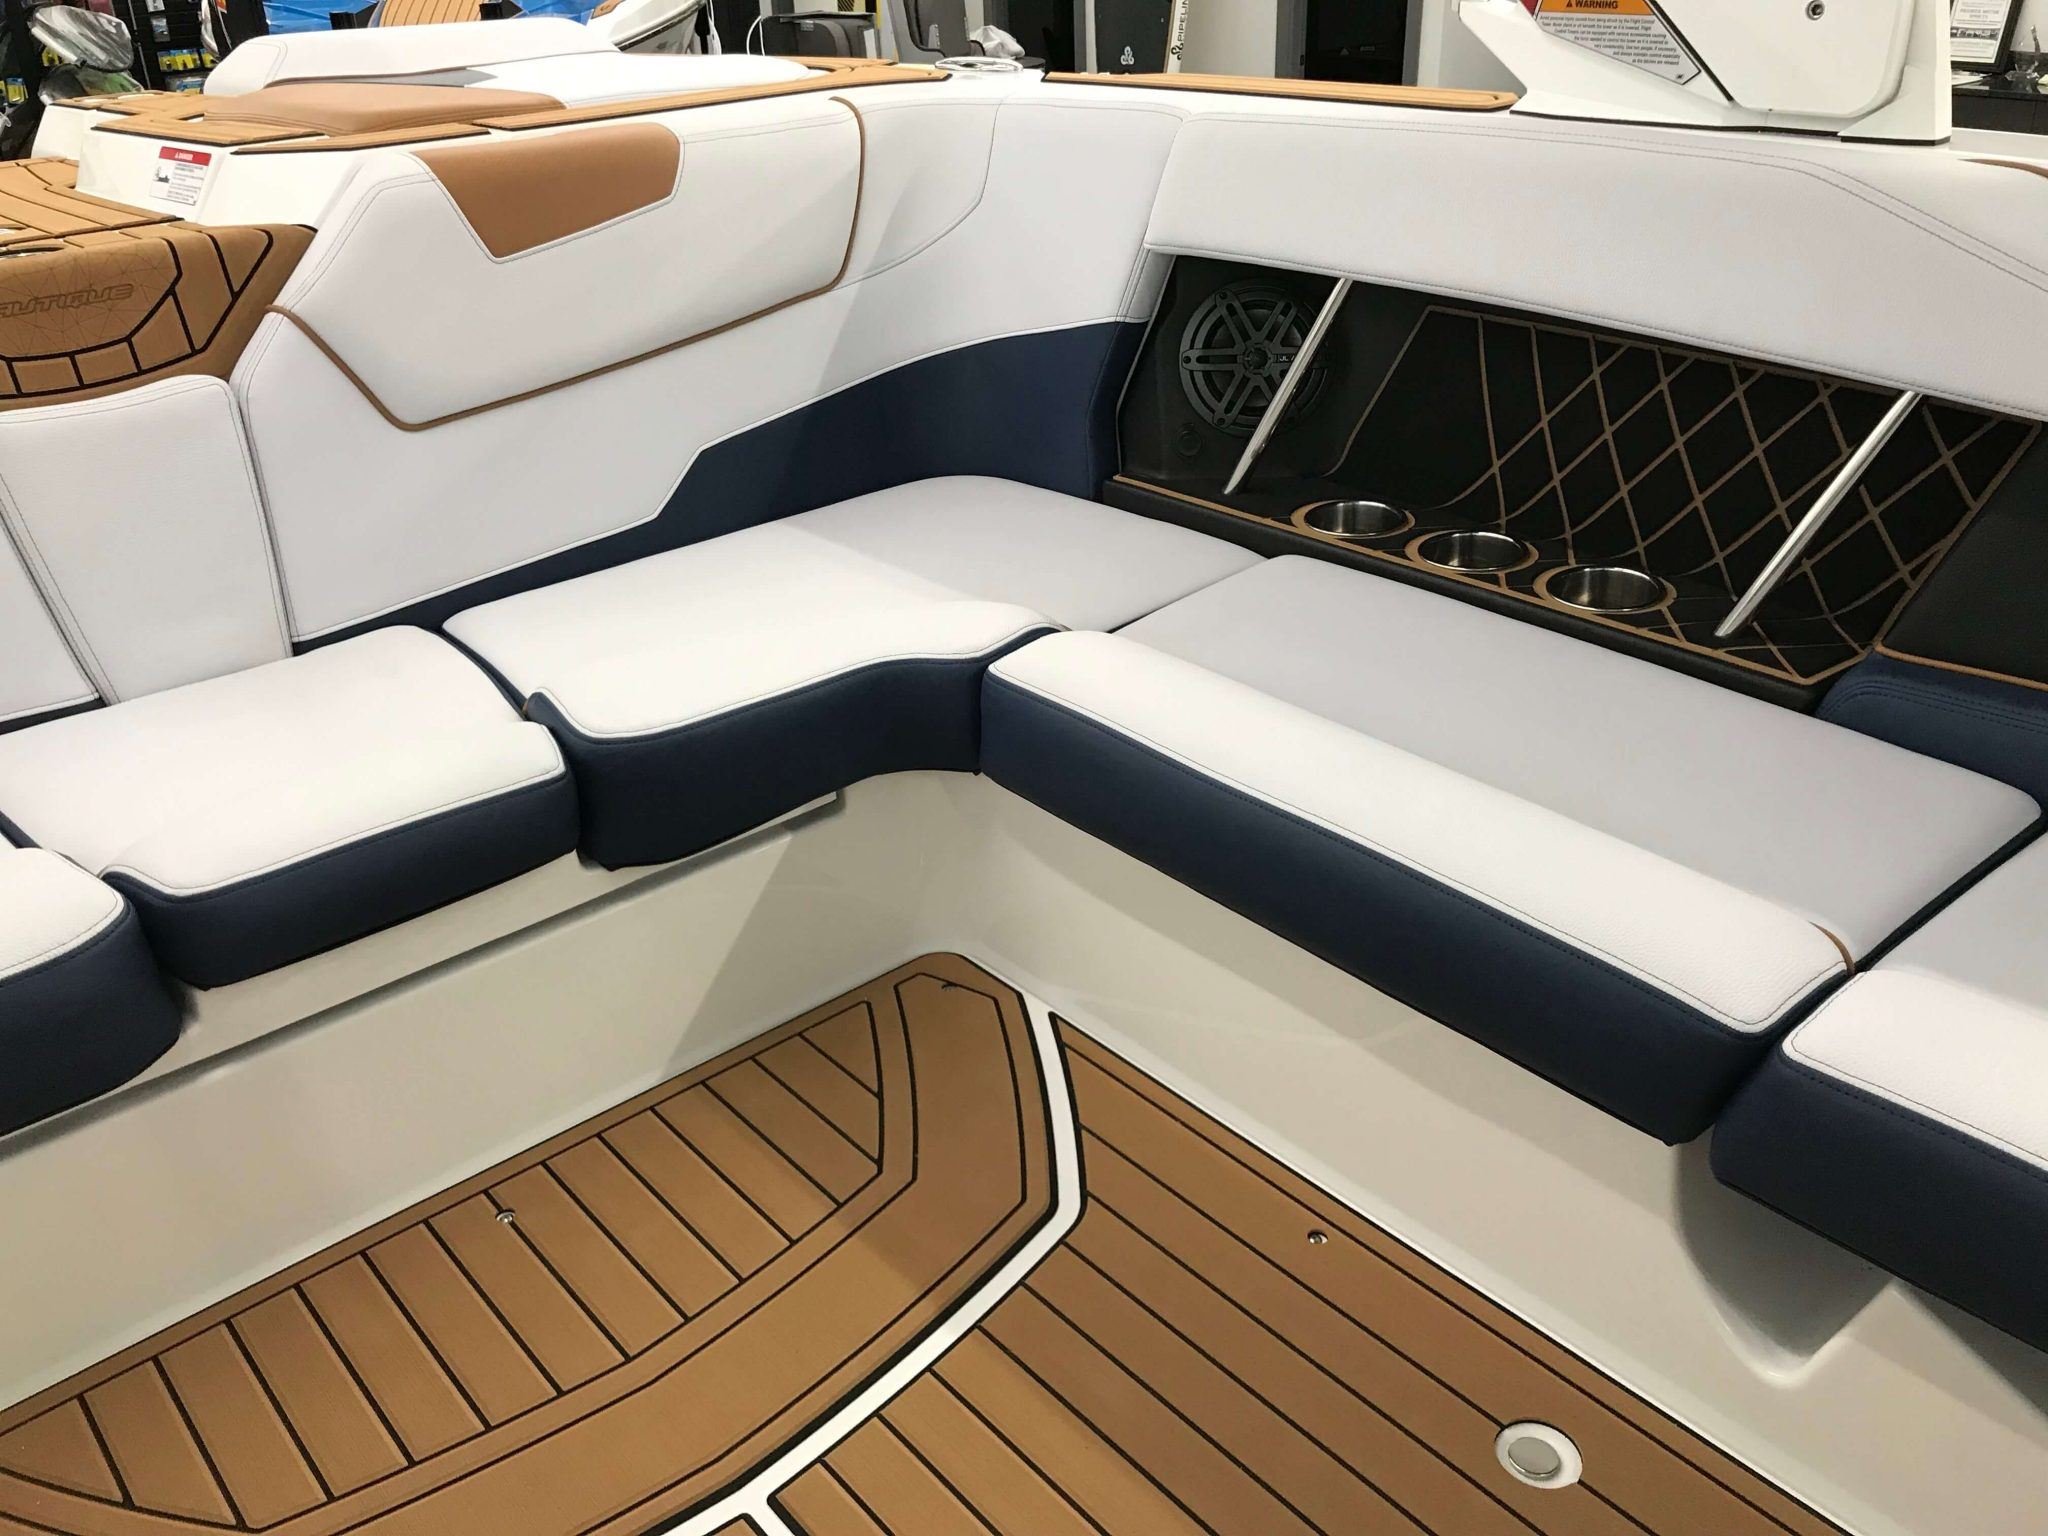 2019 Nautique GS22 Cockpit Seating 7